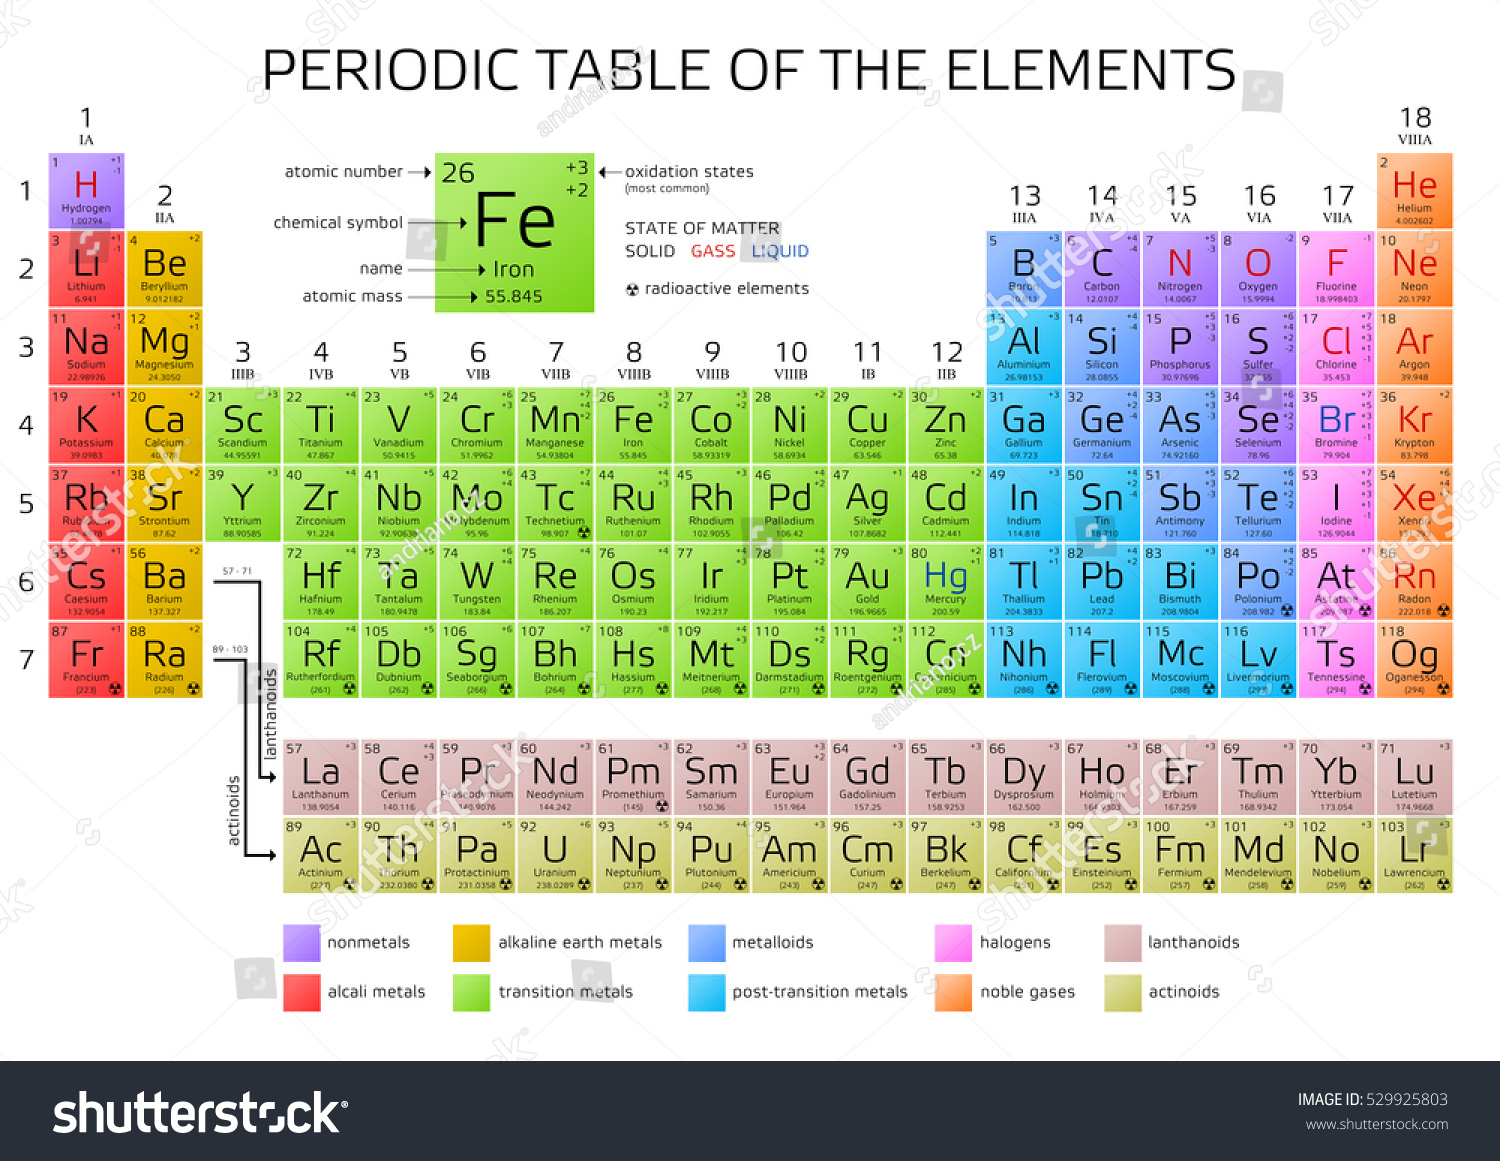 Oxidation Number Periodic Table How To Find Oxidation